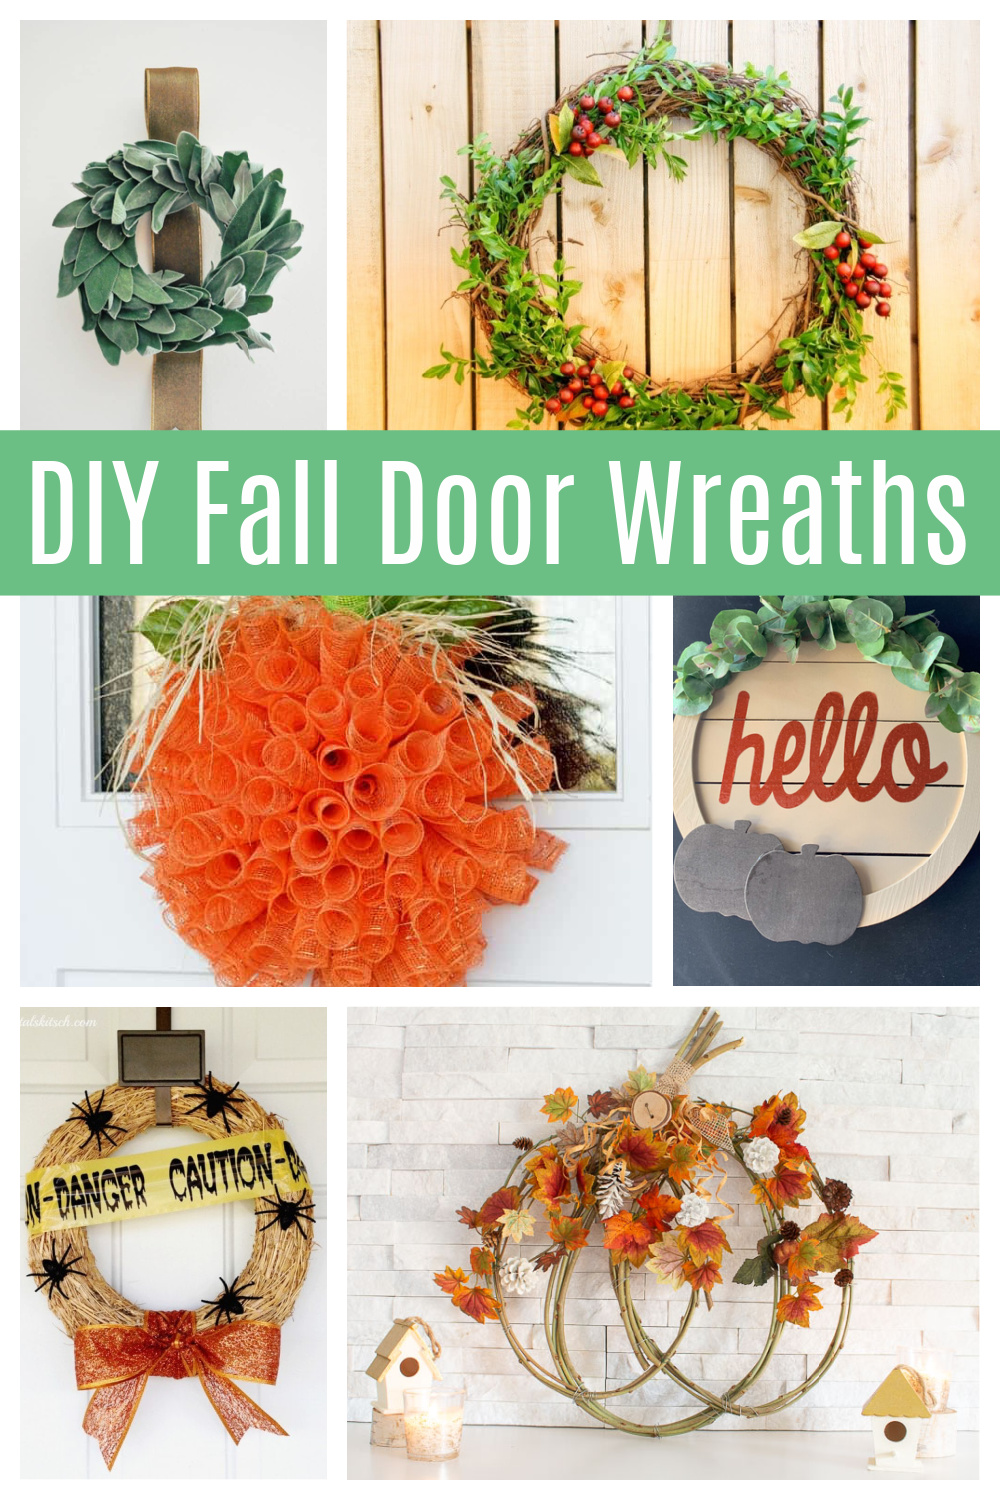 Fall Wreath Ideas 12 Diy Door Wreaths To Make During A Pandemic Life Family Joy